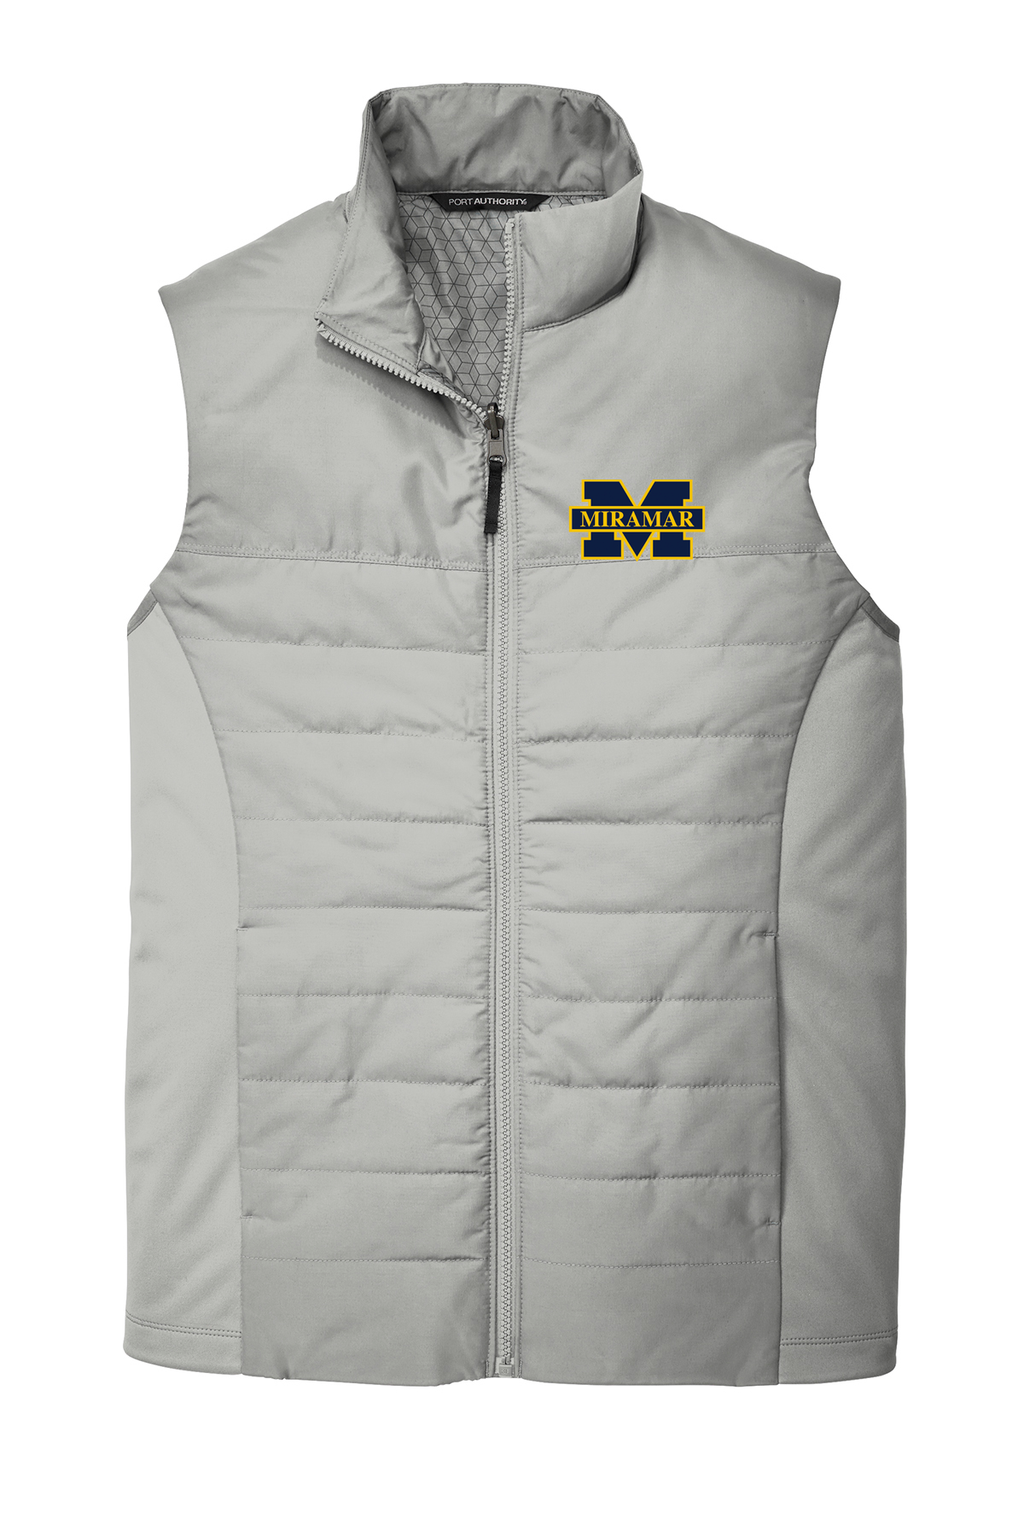 Miramar Wolverines Football Vest